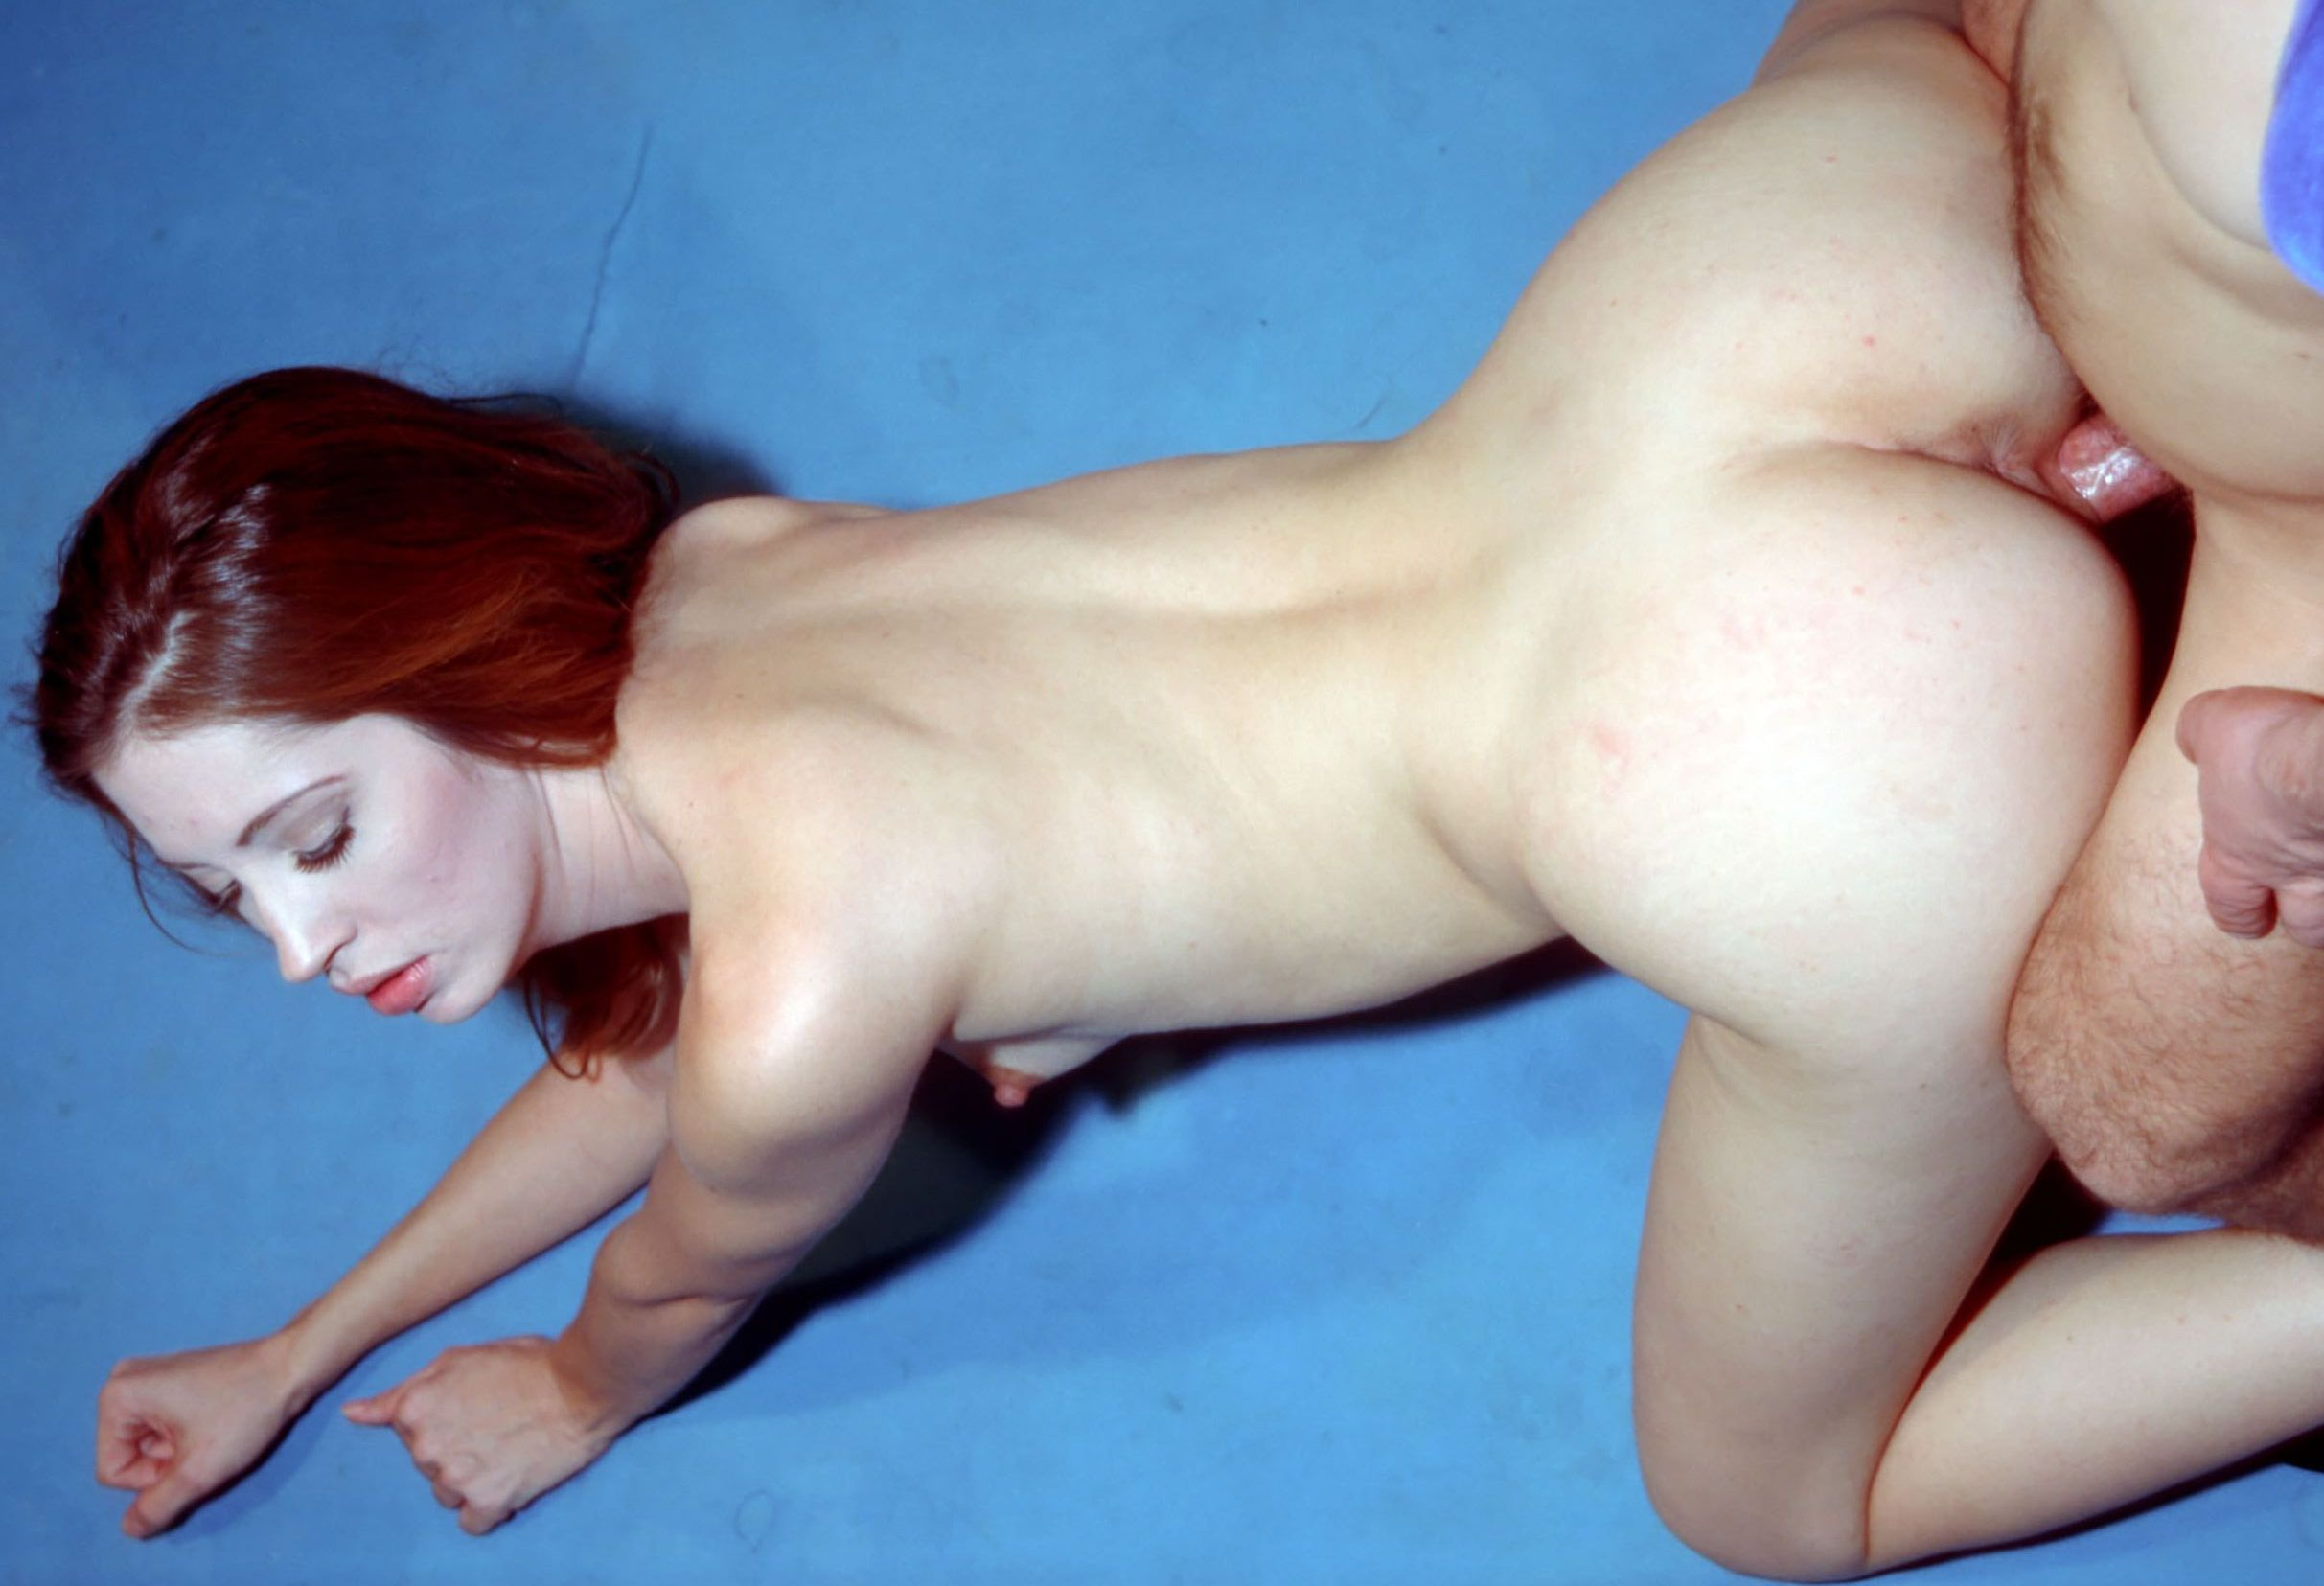 something is. Now free redhead creampie grateful for the help